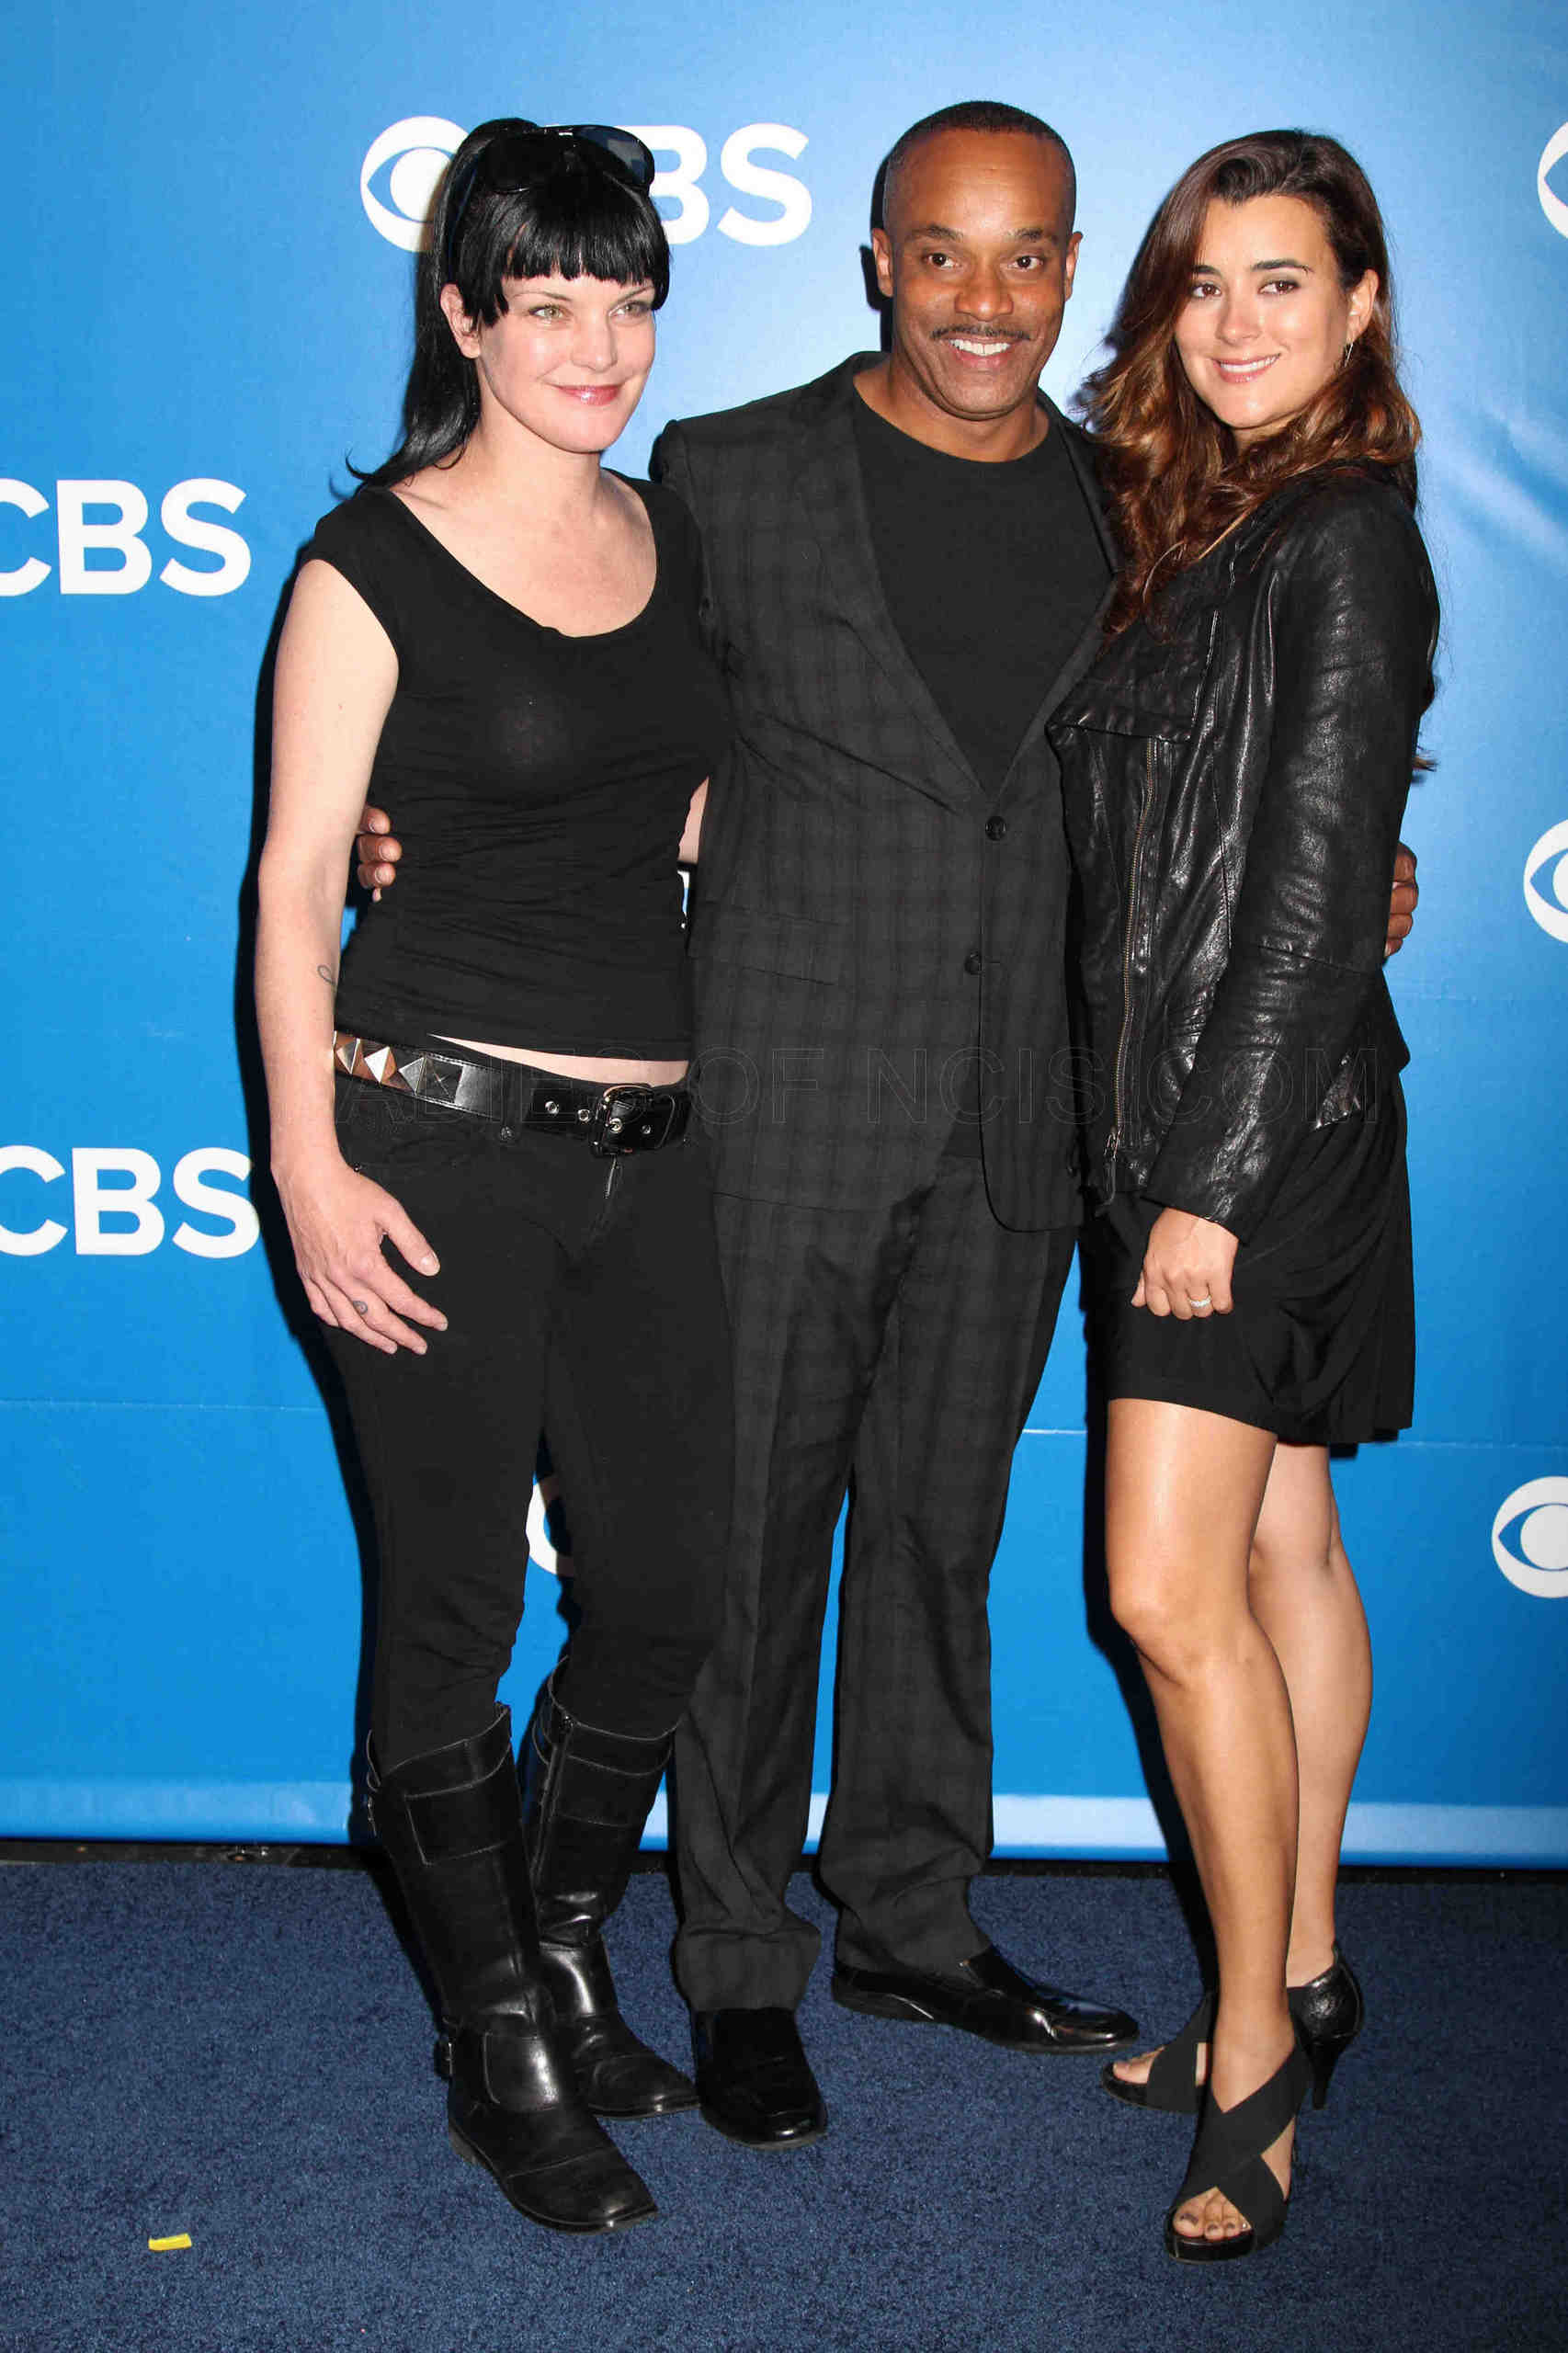 2012 CBS Upfront in New York - 05/16/12